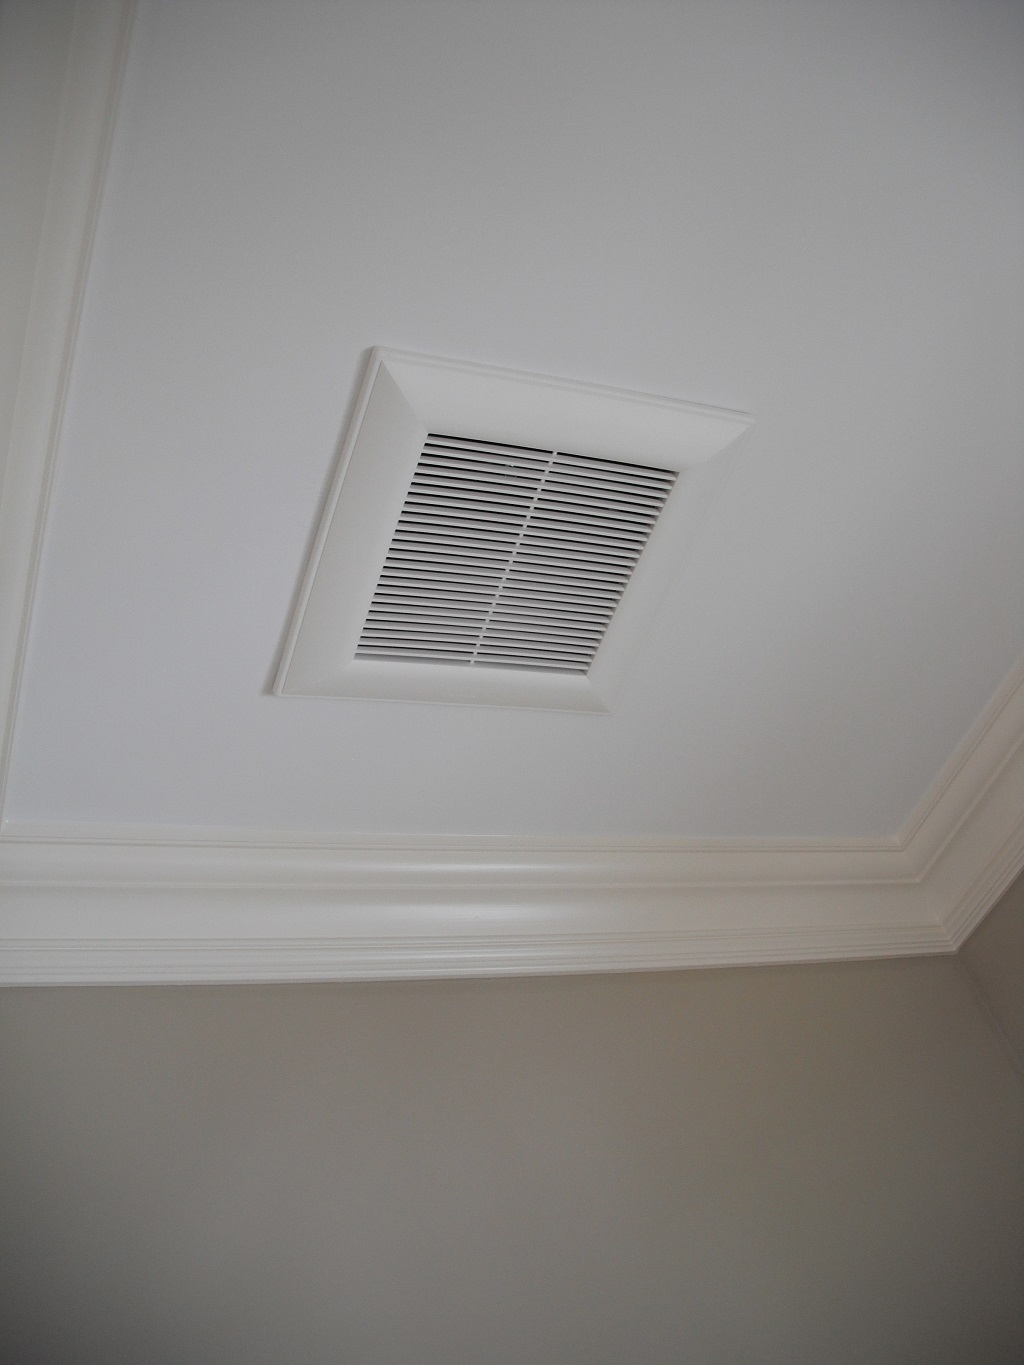 Short hills nj electrical contractors and electrical services for Installation of bathroom exhaust fan